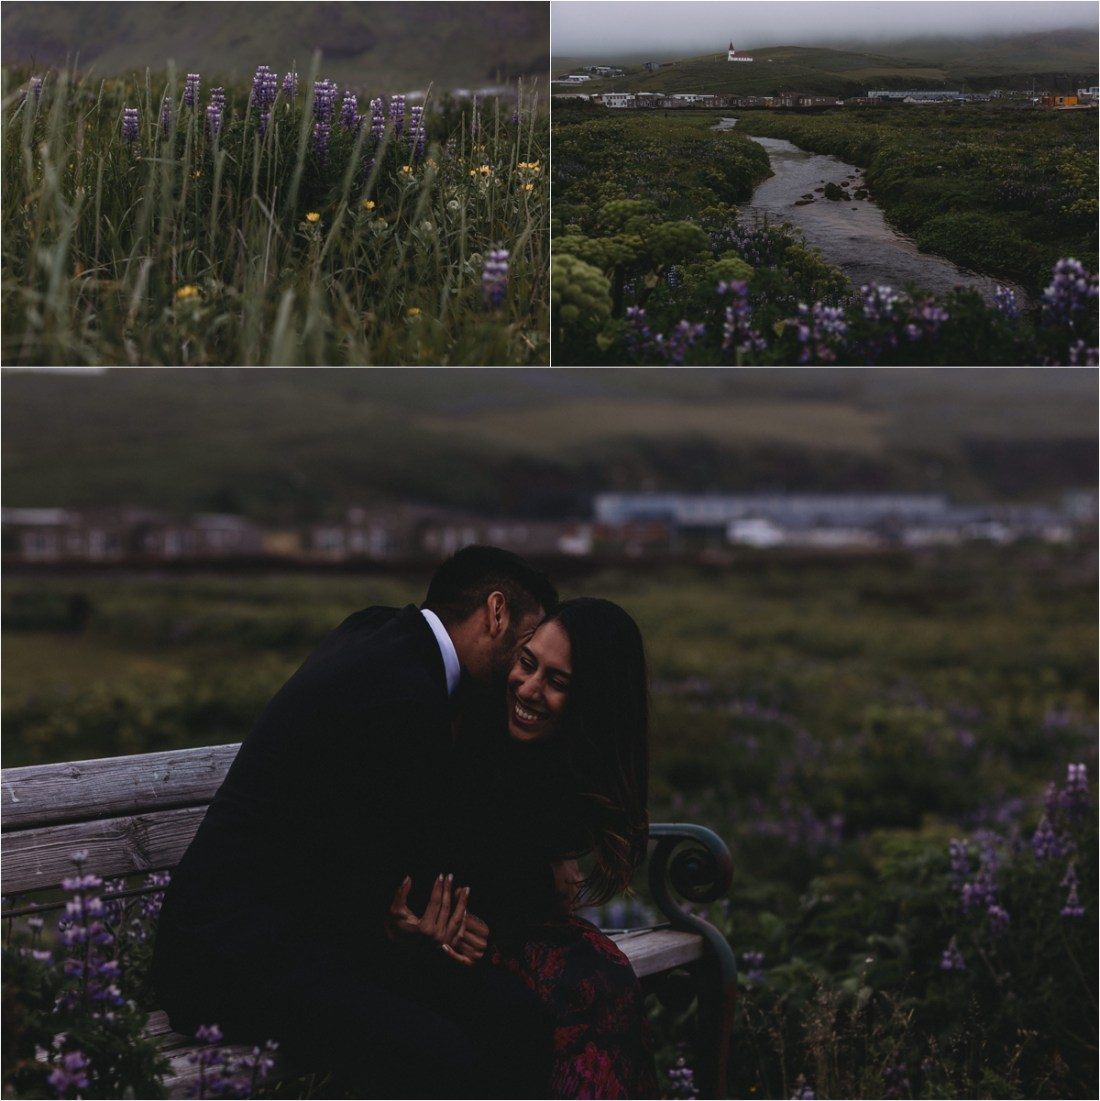 Purple wildflowers for their proposal photo shoot in Iceland by Zakas Photography